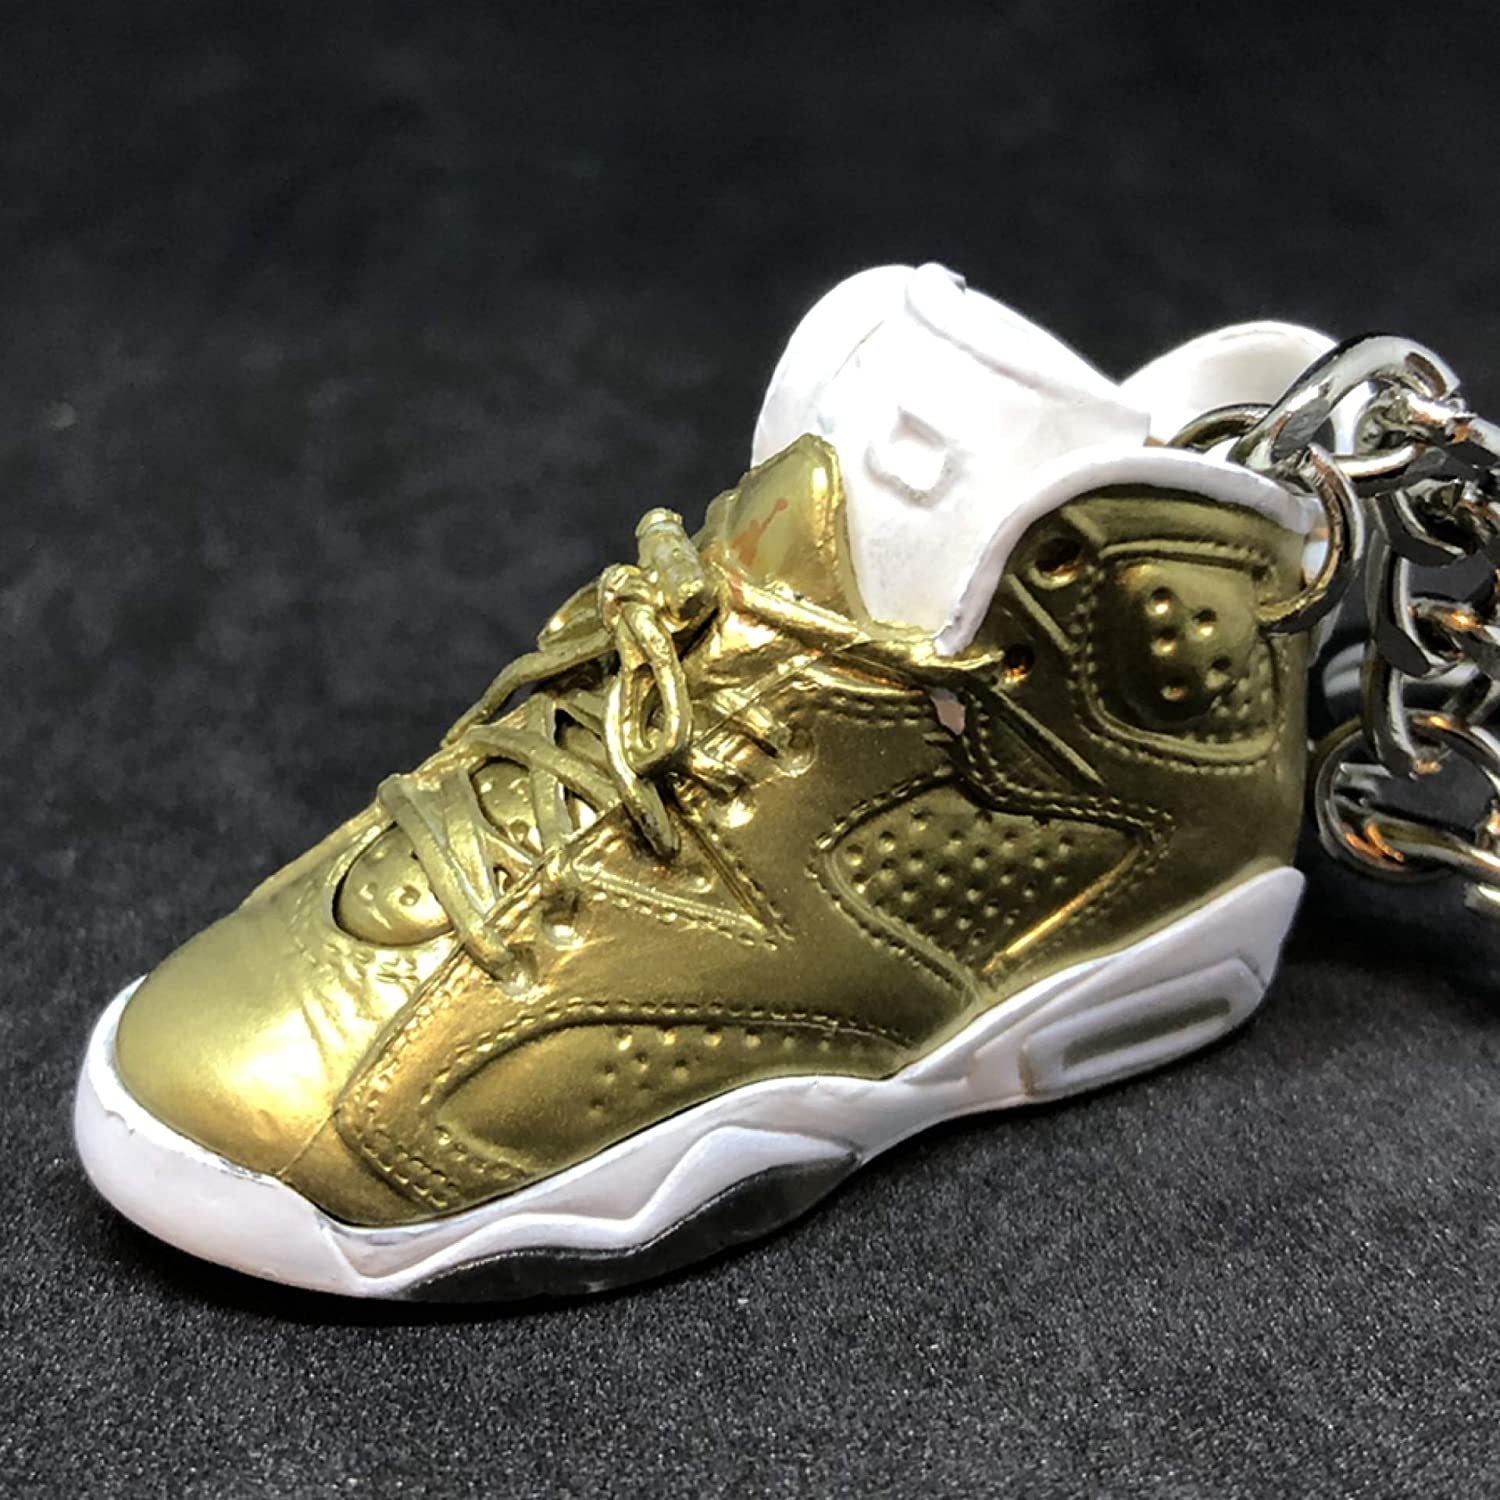 promo code 1563c 8e86d Amazon.com  Air Jordan VI 6 Retro Pinnacle Metallic Gold OG Sneakers Shoes  3D Keychain 1 6 Figure  Everything Else